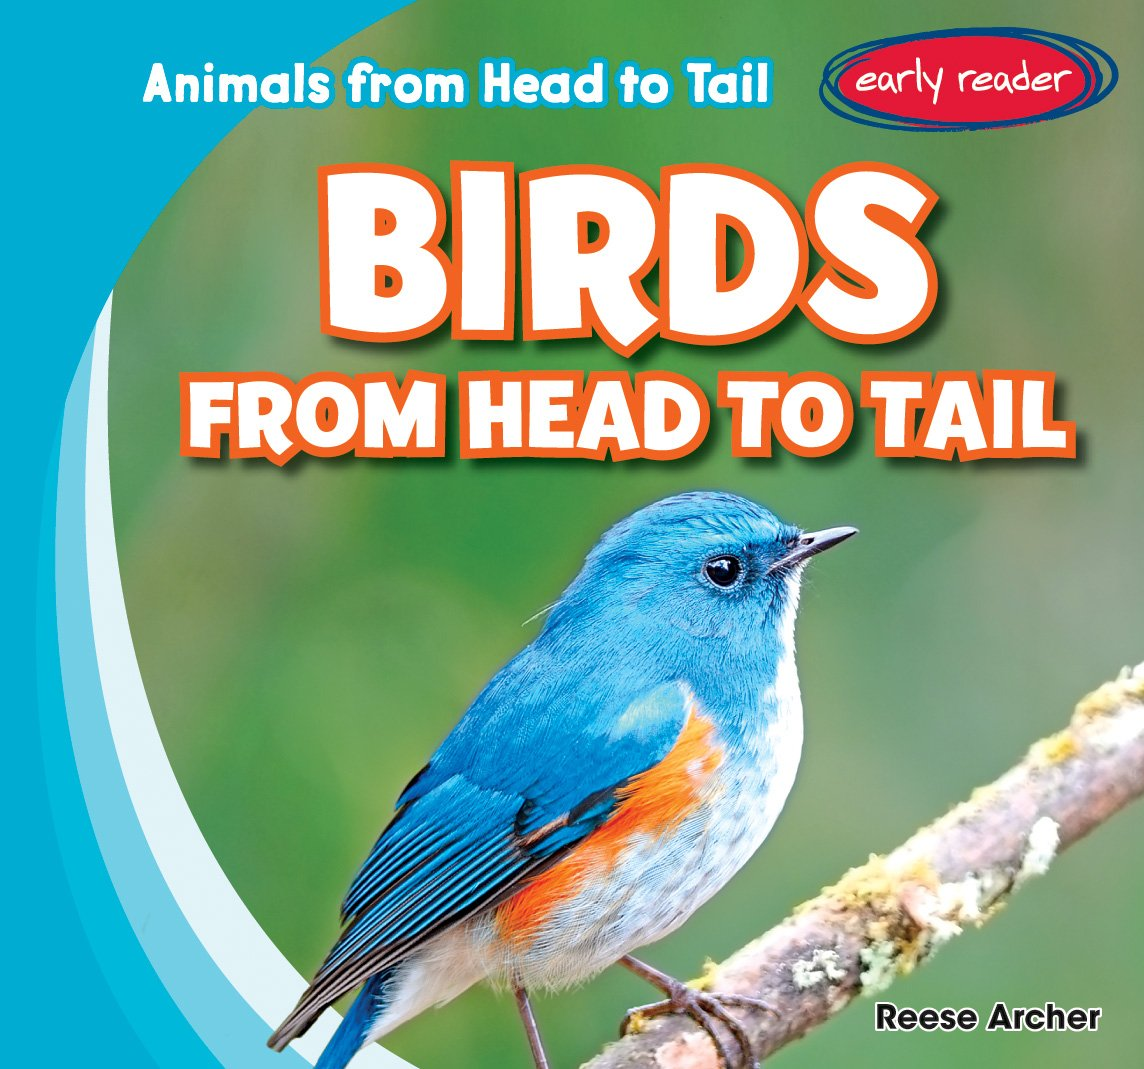 Birds from Head to Tail (Animals from Head to Tail)